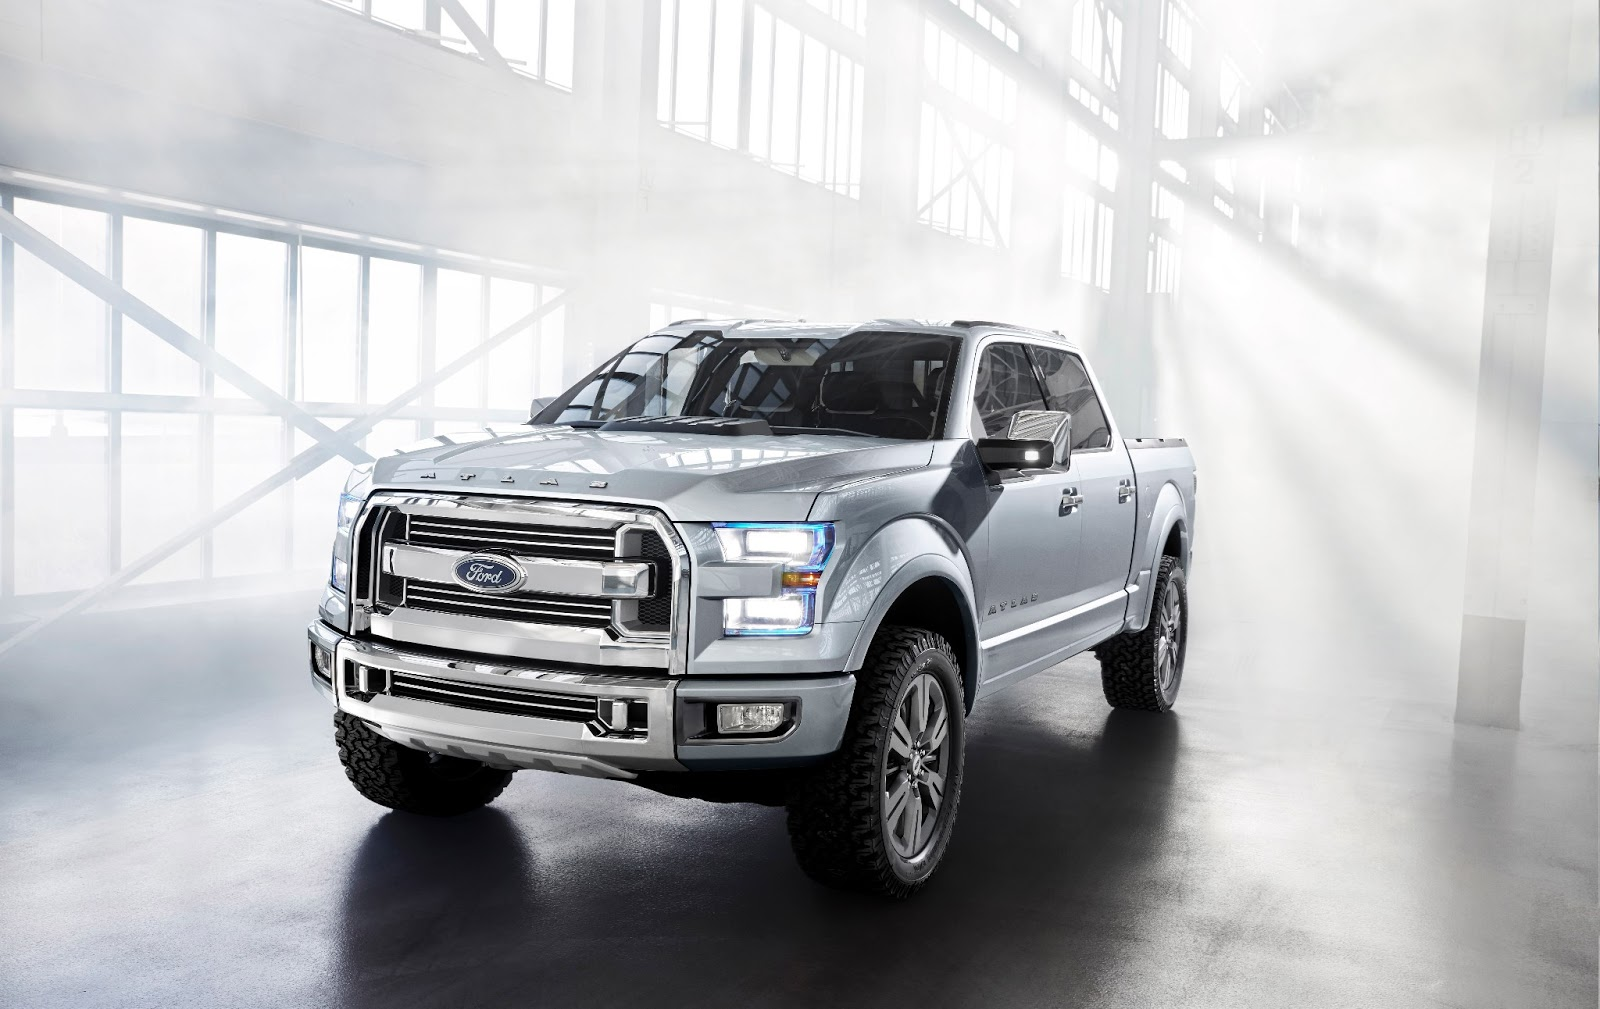 hope Ford will offer a luxury version with competitive diesel